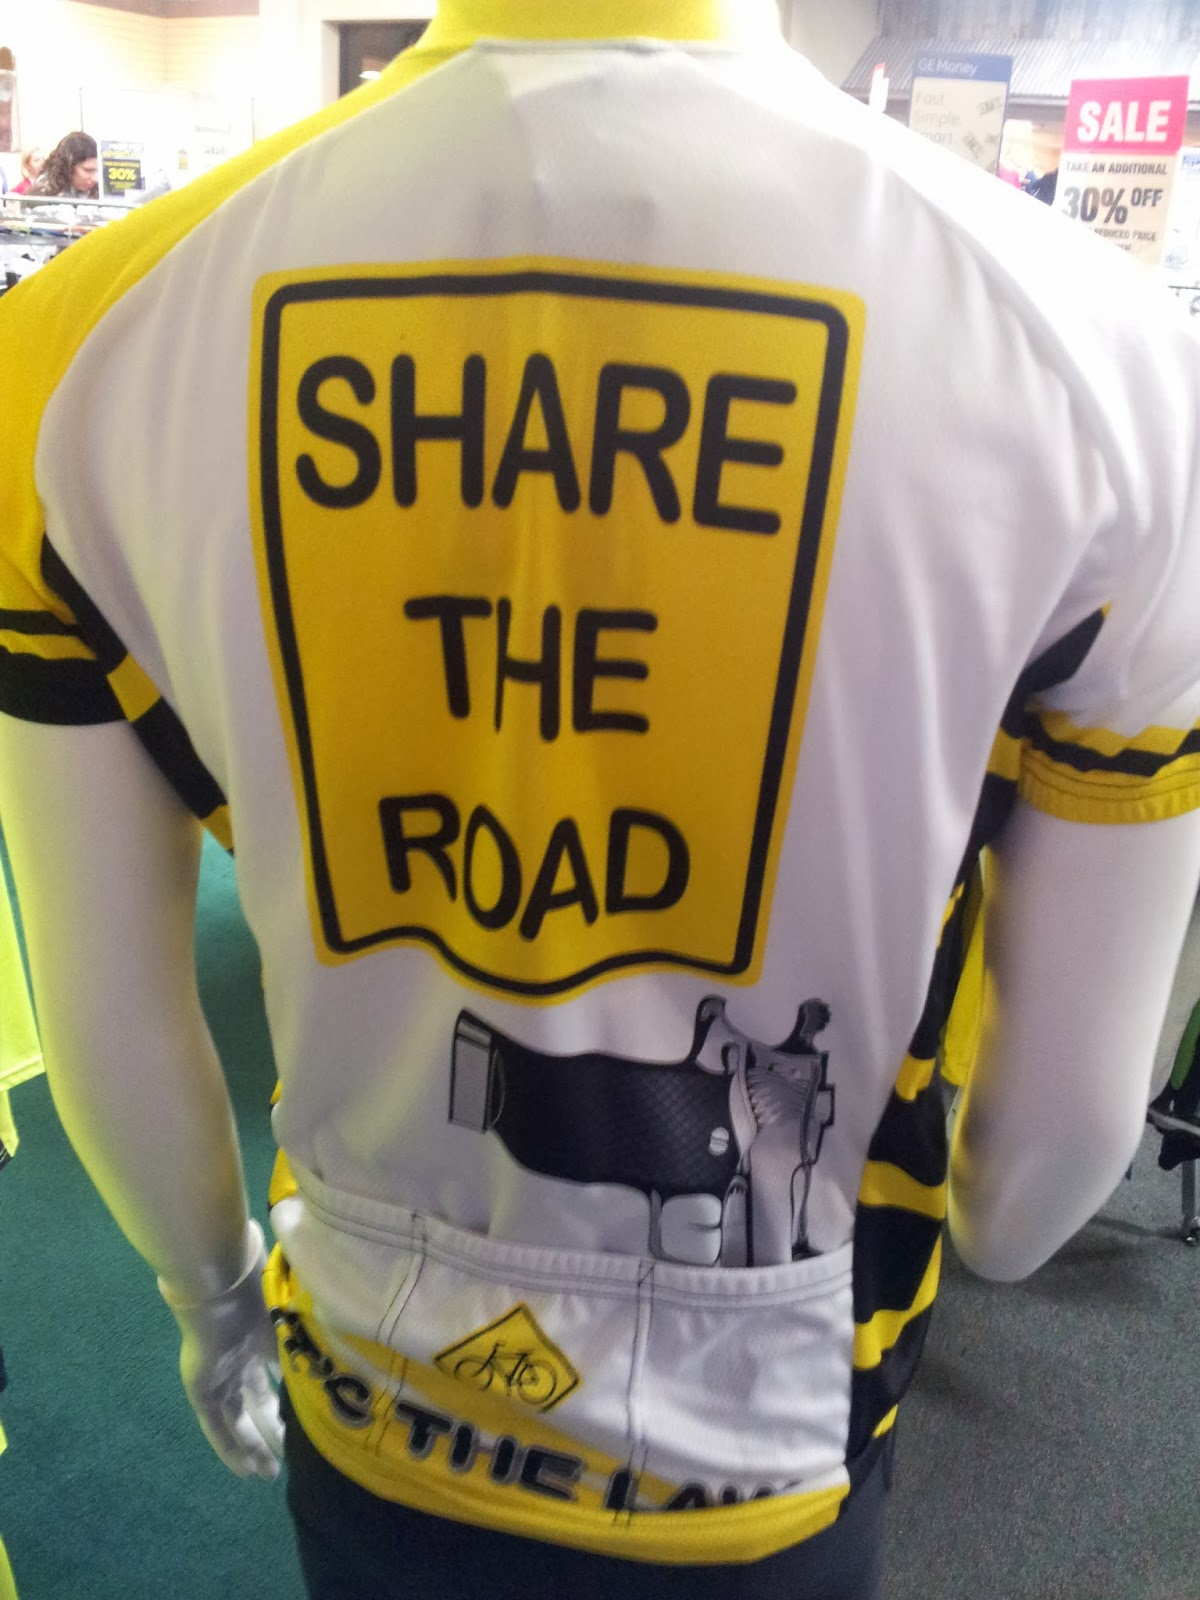 Share The Road Jersey with Handgun pointing into back pocket